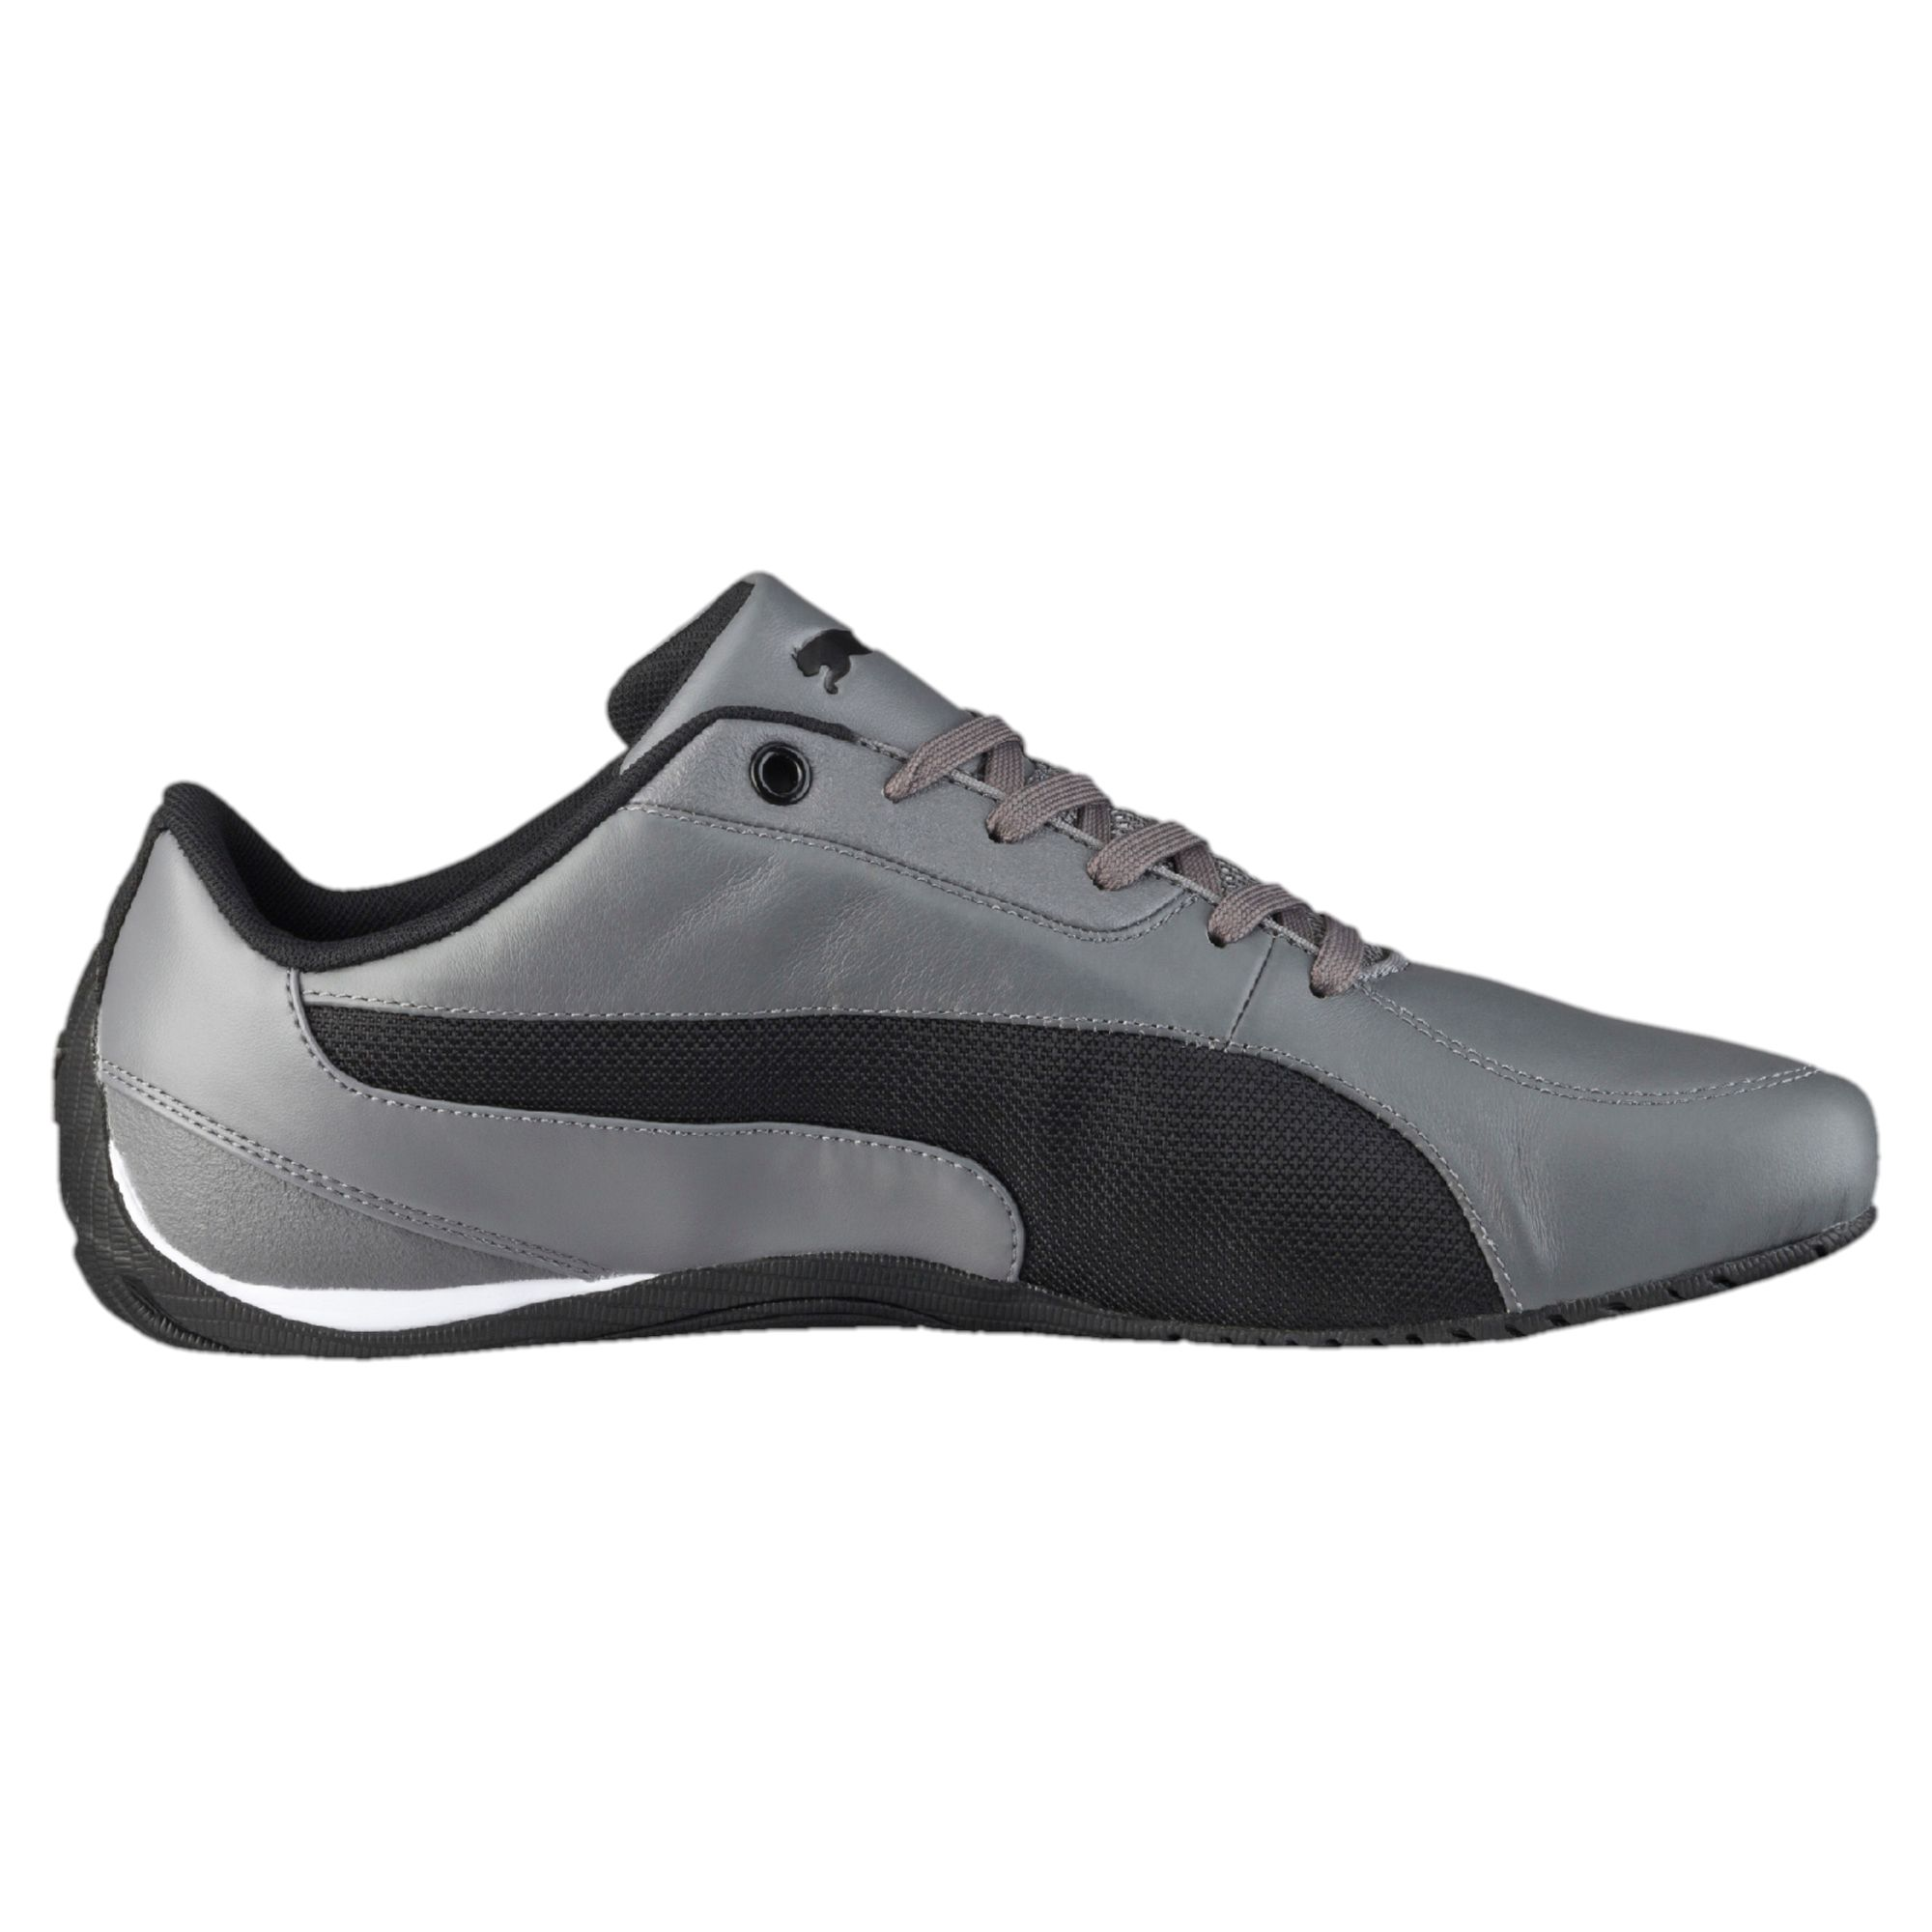 puma drift cat puma-drift-cat-5-leather-men-039-s- GEDWUXP